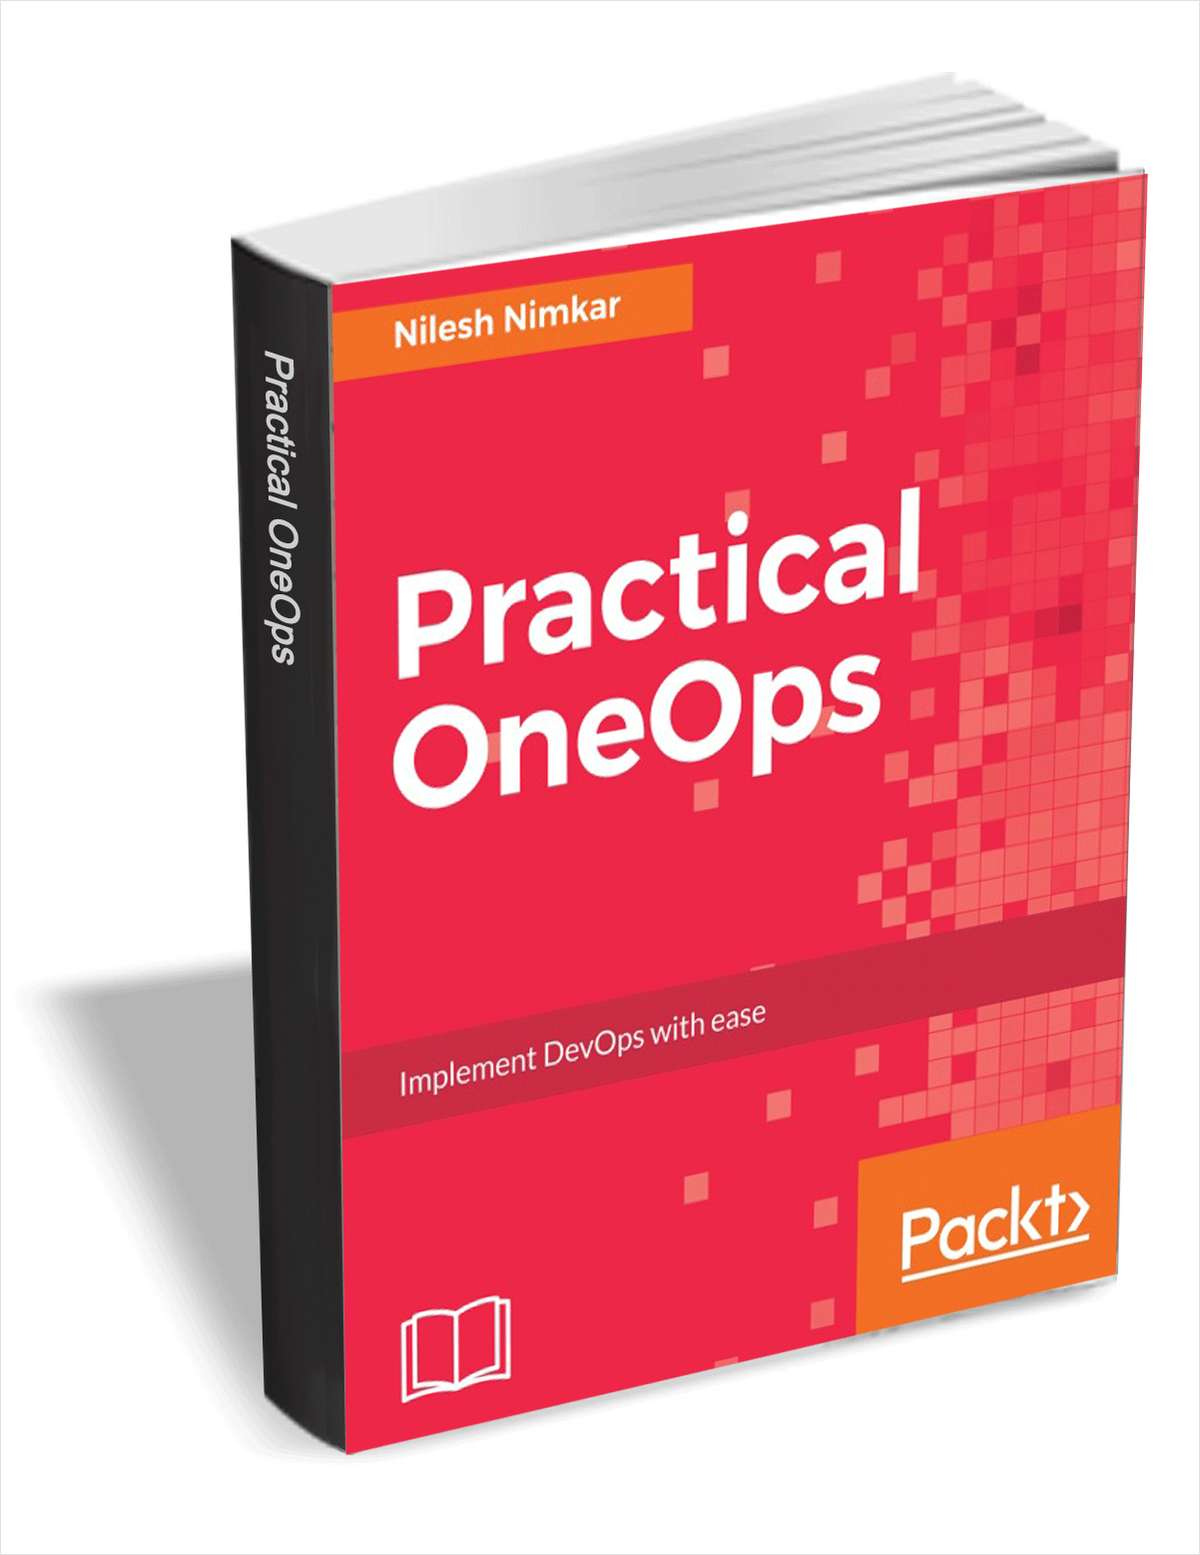 Practical OneOps ($20 Value) FREE For a Limited Time + Survey with Discount Code